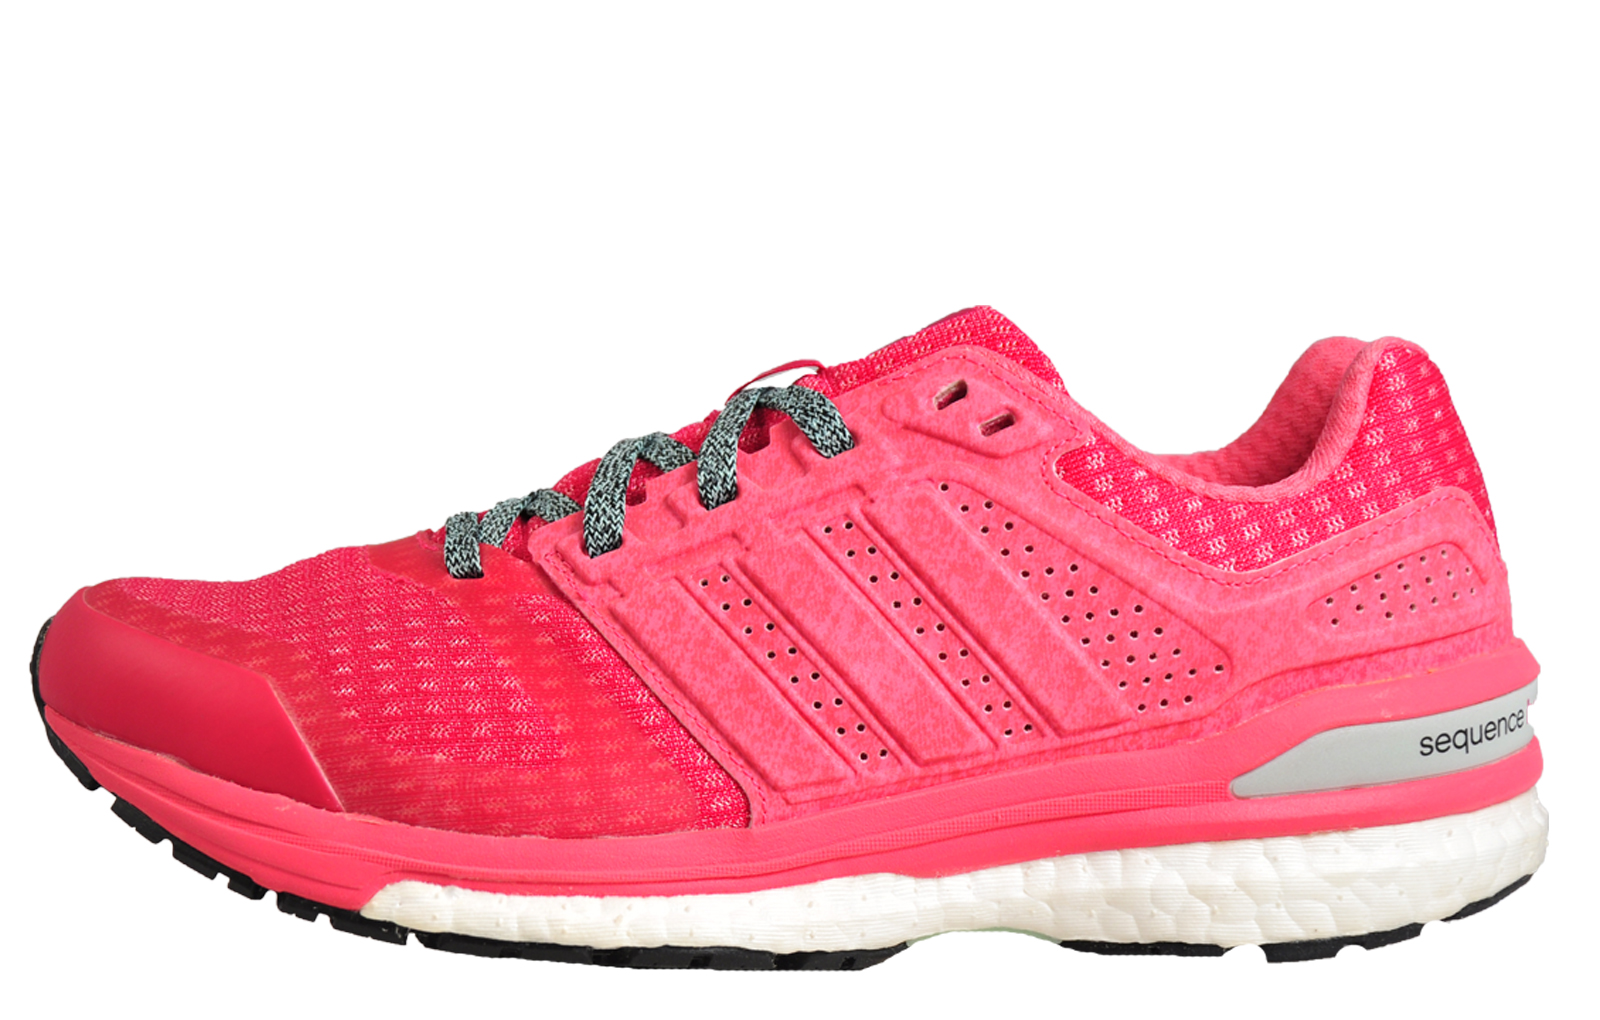 separation shoes def4d d96a2 Adidas Supernova Sequence Boost 8 Womens